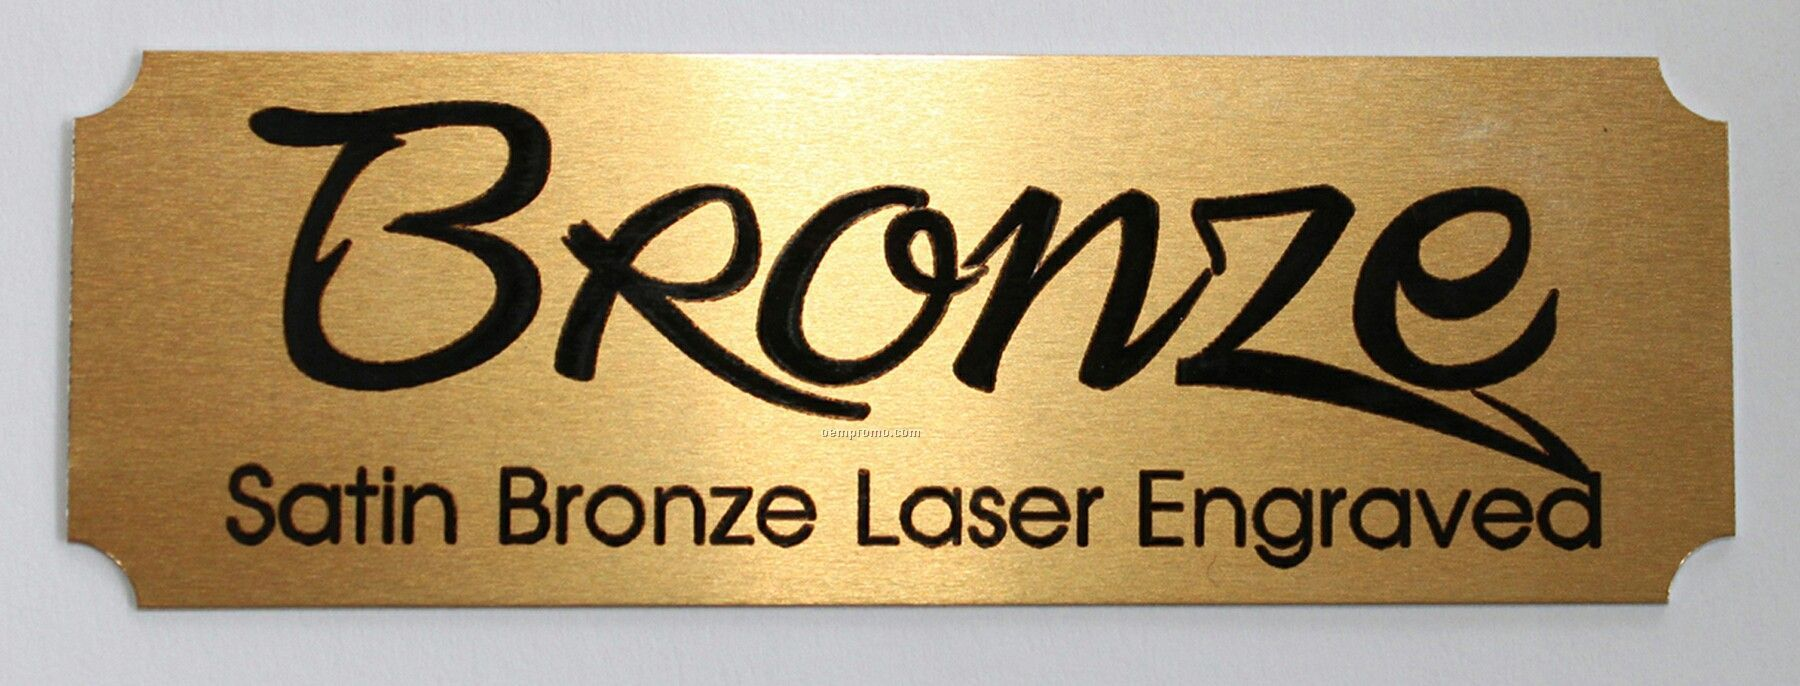 Laser Engraved Satin Bronze Name Plate 3 Quot W X 1 Quot H China